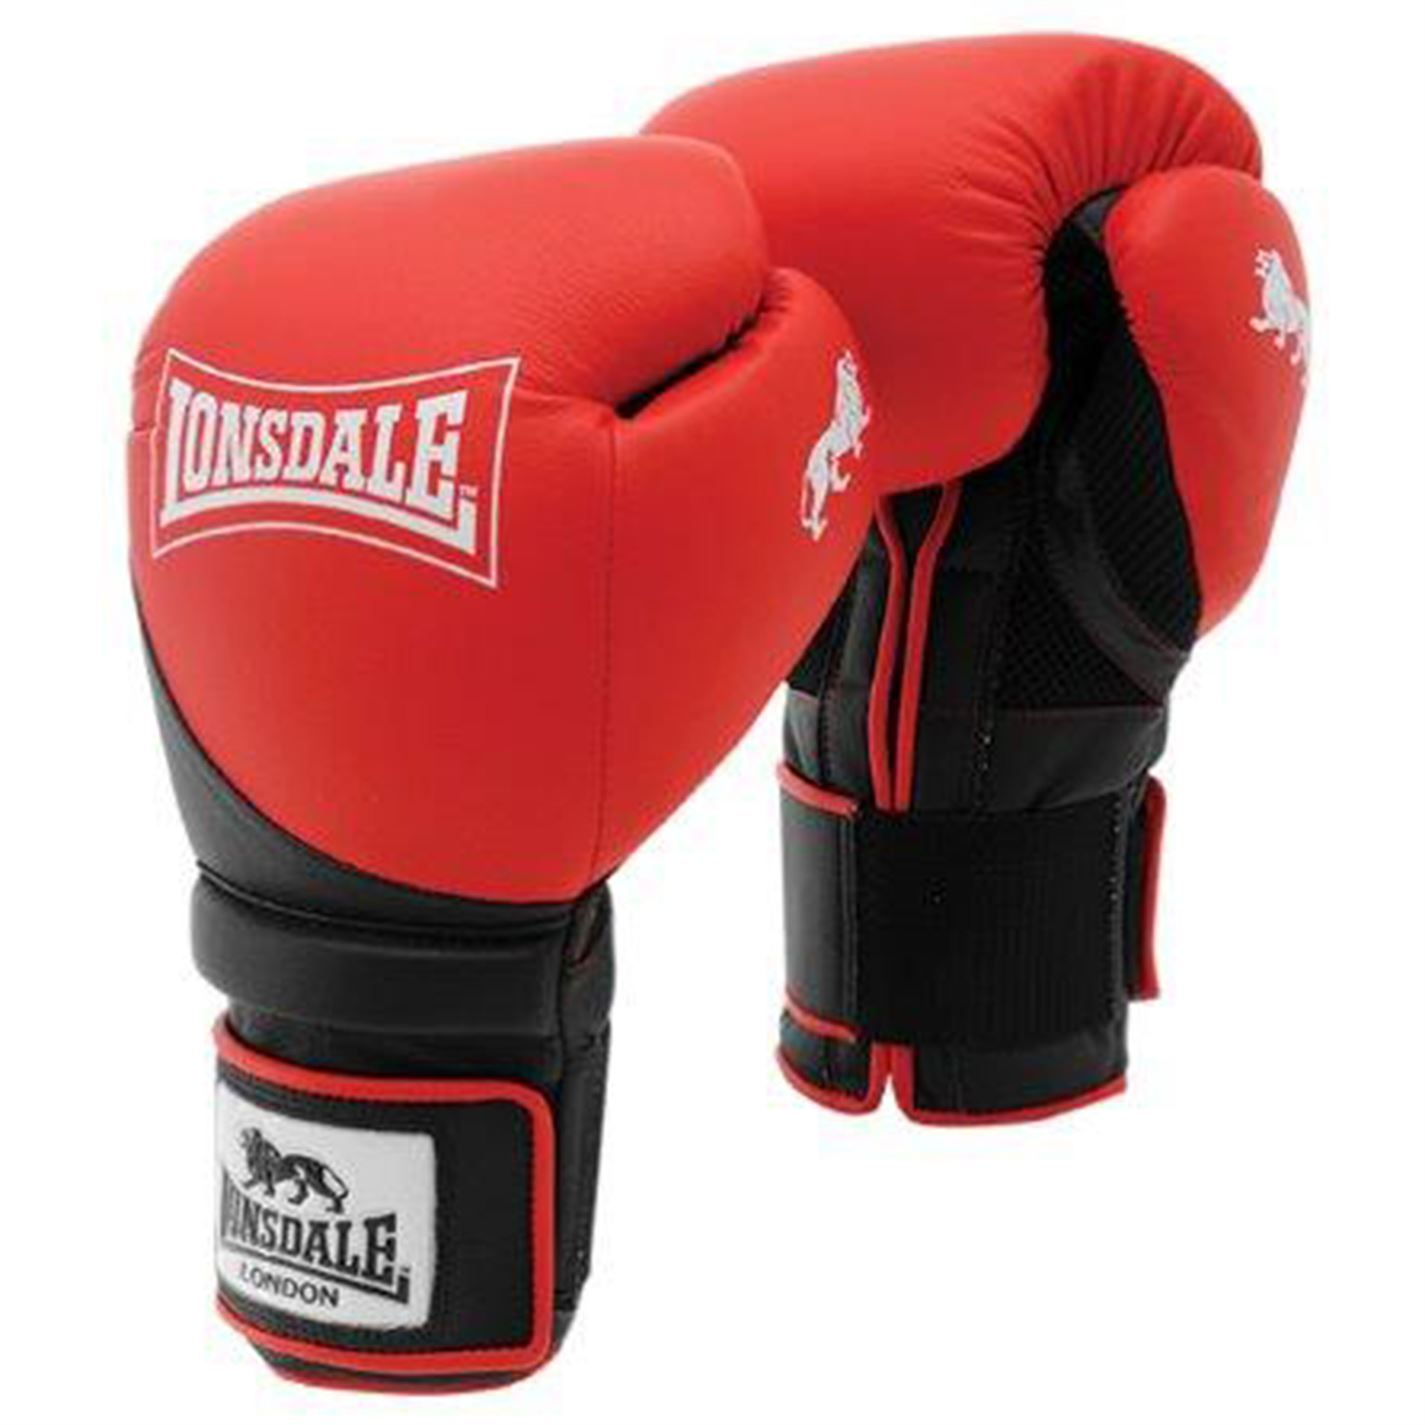 Mens gloves sports direct - Lonsdale Gym Training Boxing Gloves Now 24 99